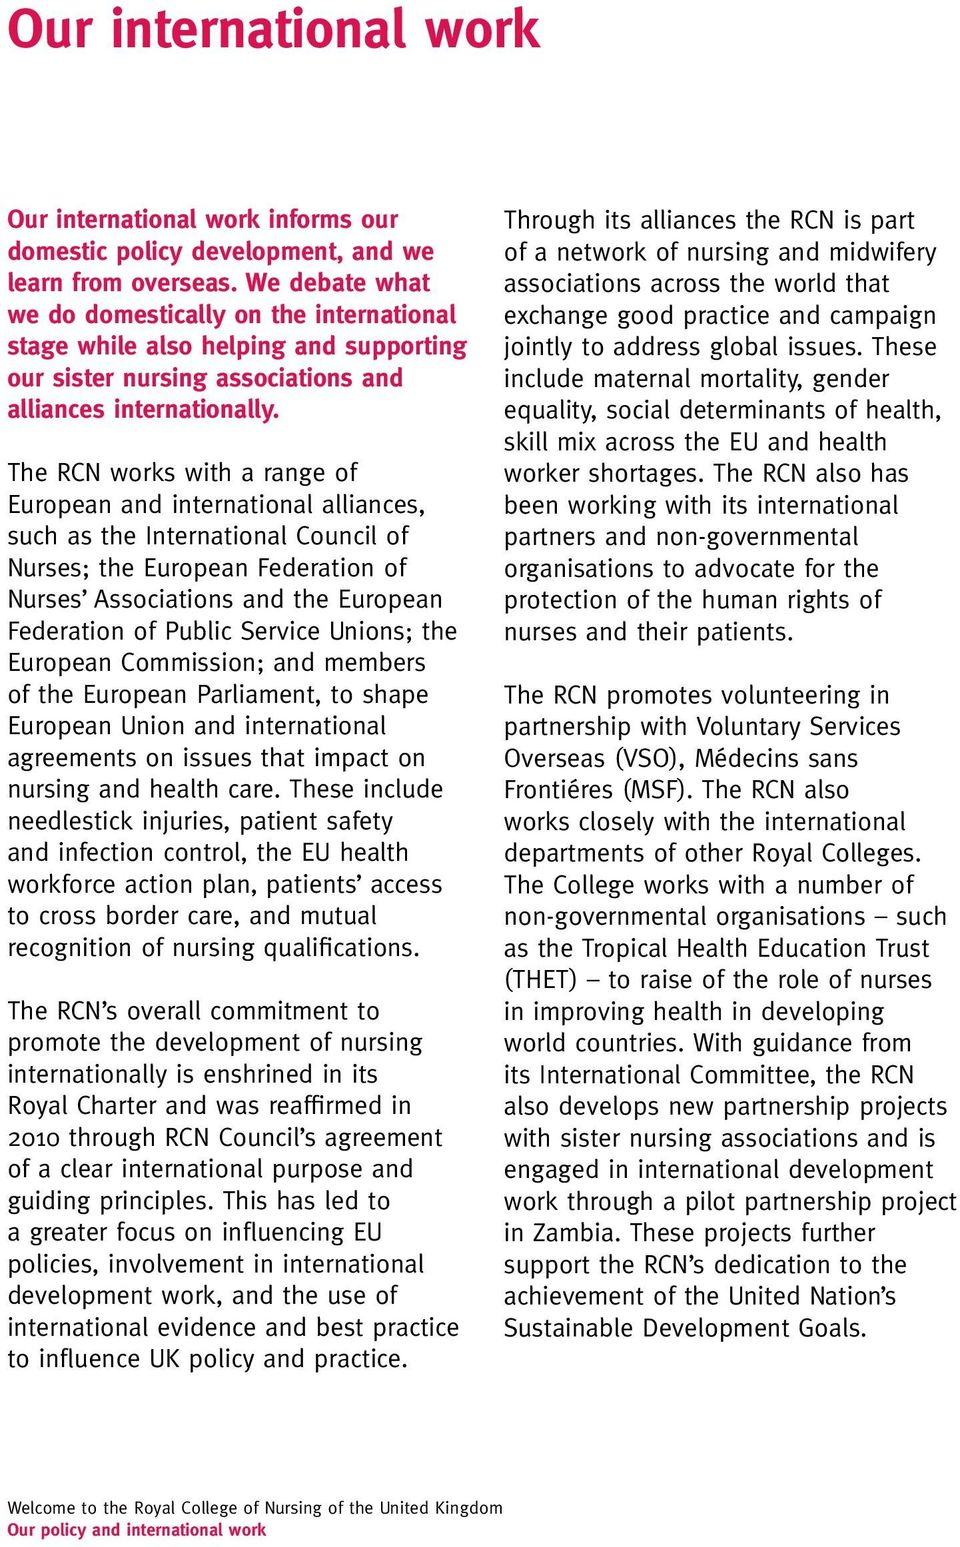 The RCN works with a range of European and international alliances, such as the International Council of Nurses; the European Federation of Nurses Associations and the European Federation of Public